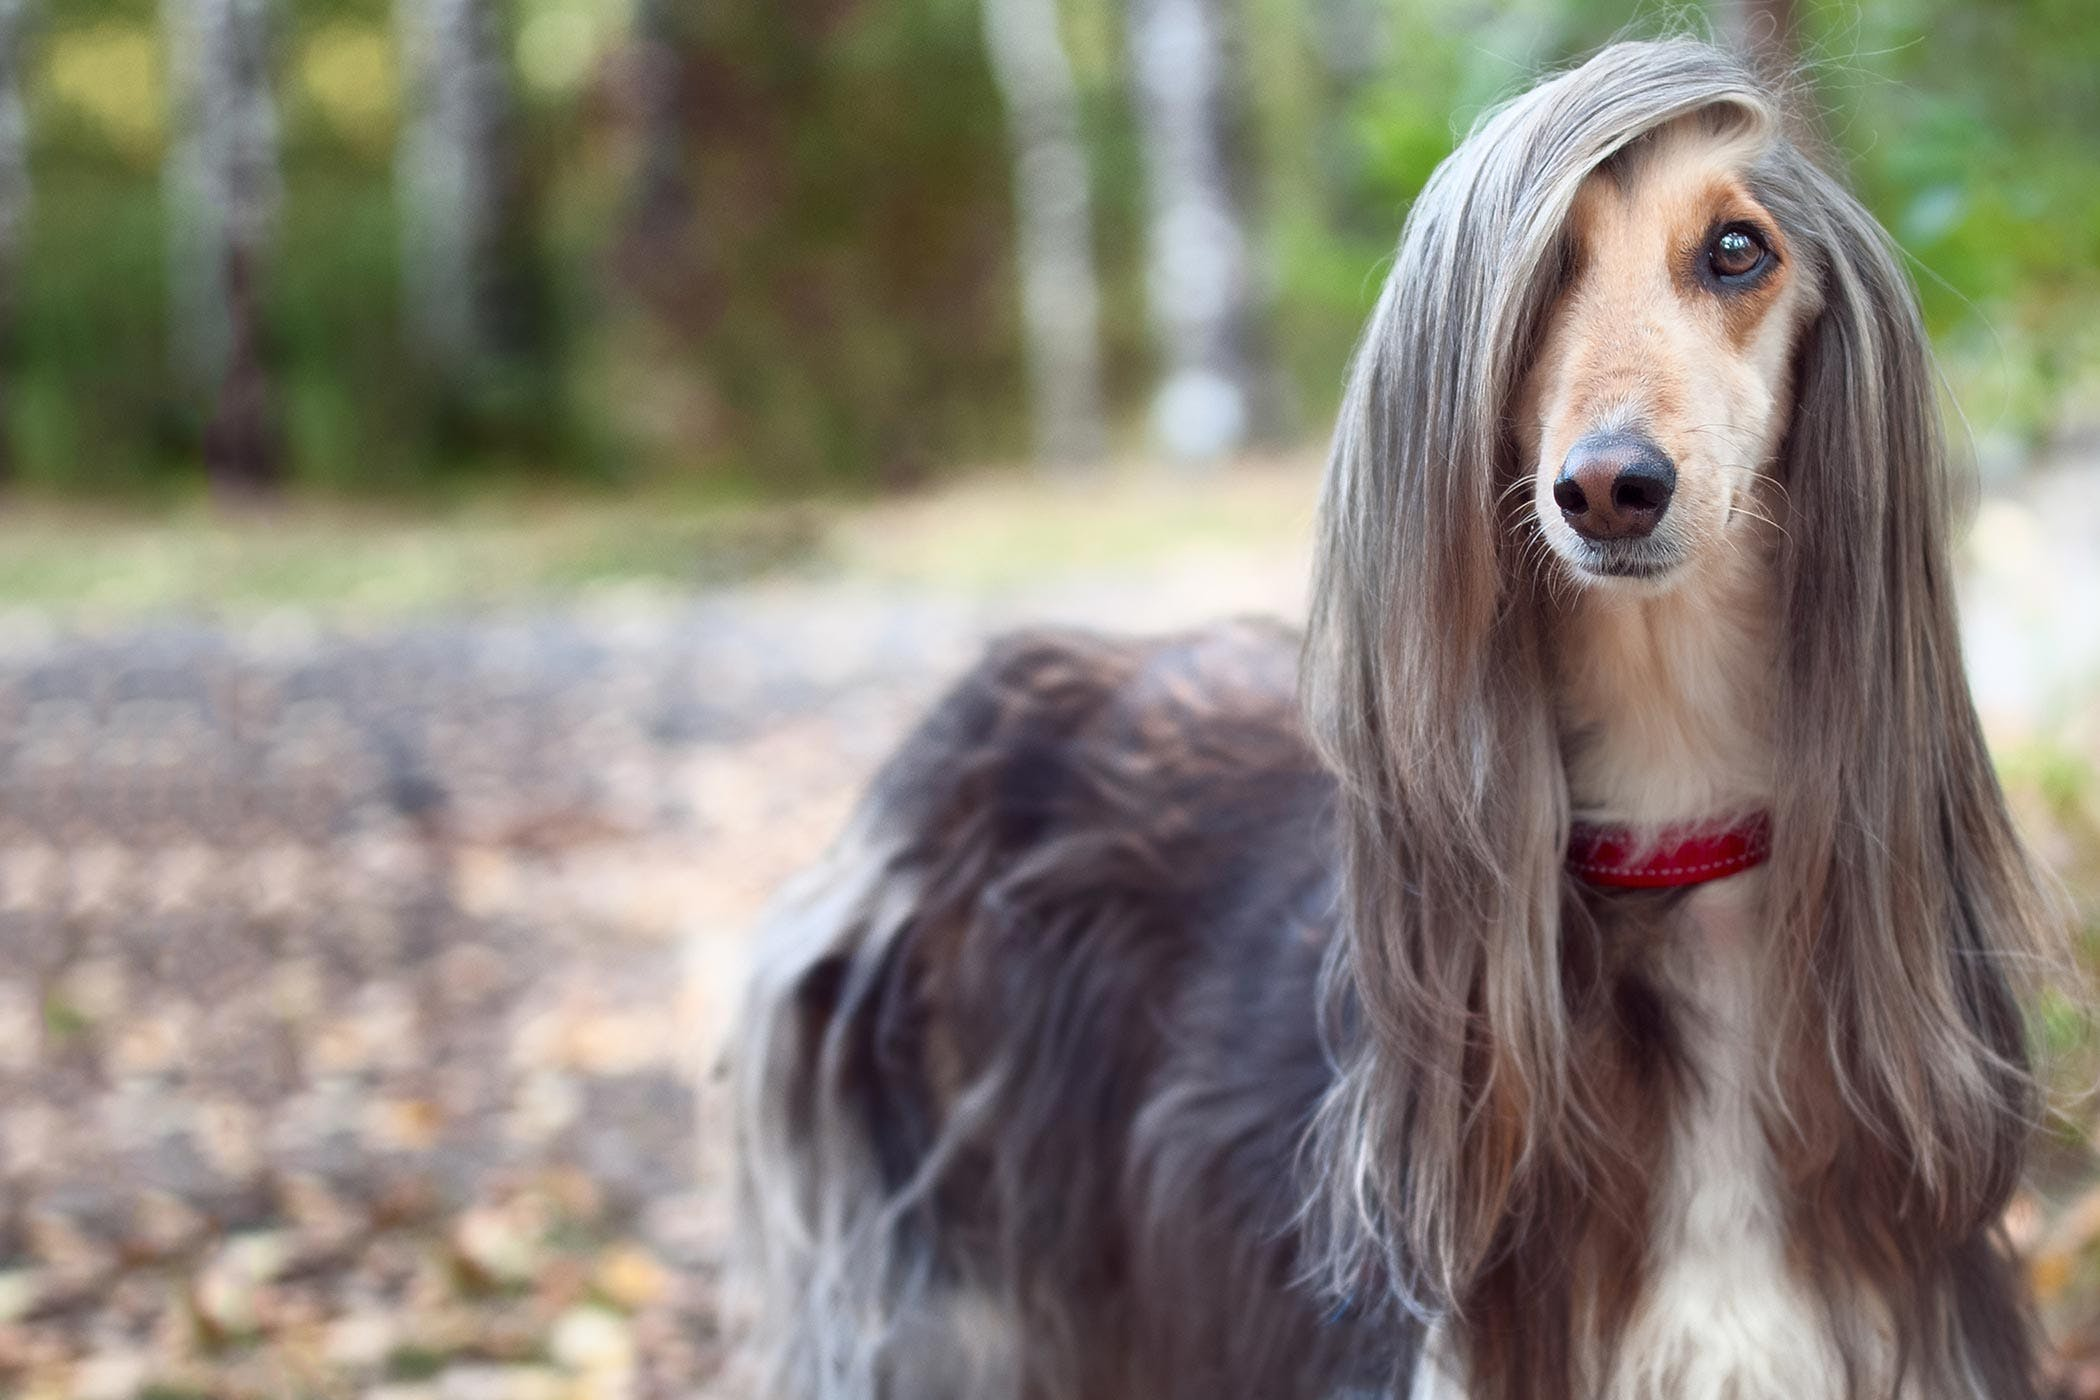 How To Groom A Dog With Long Hair